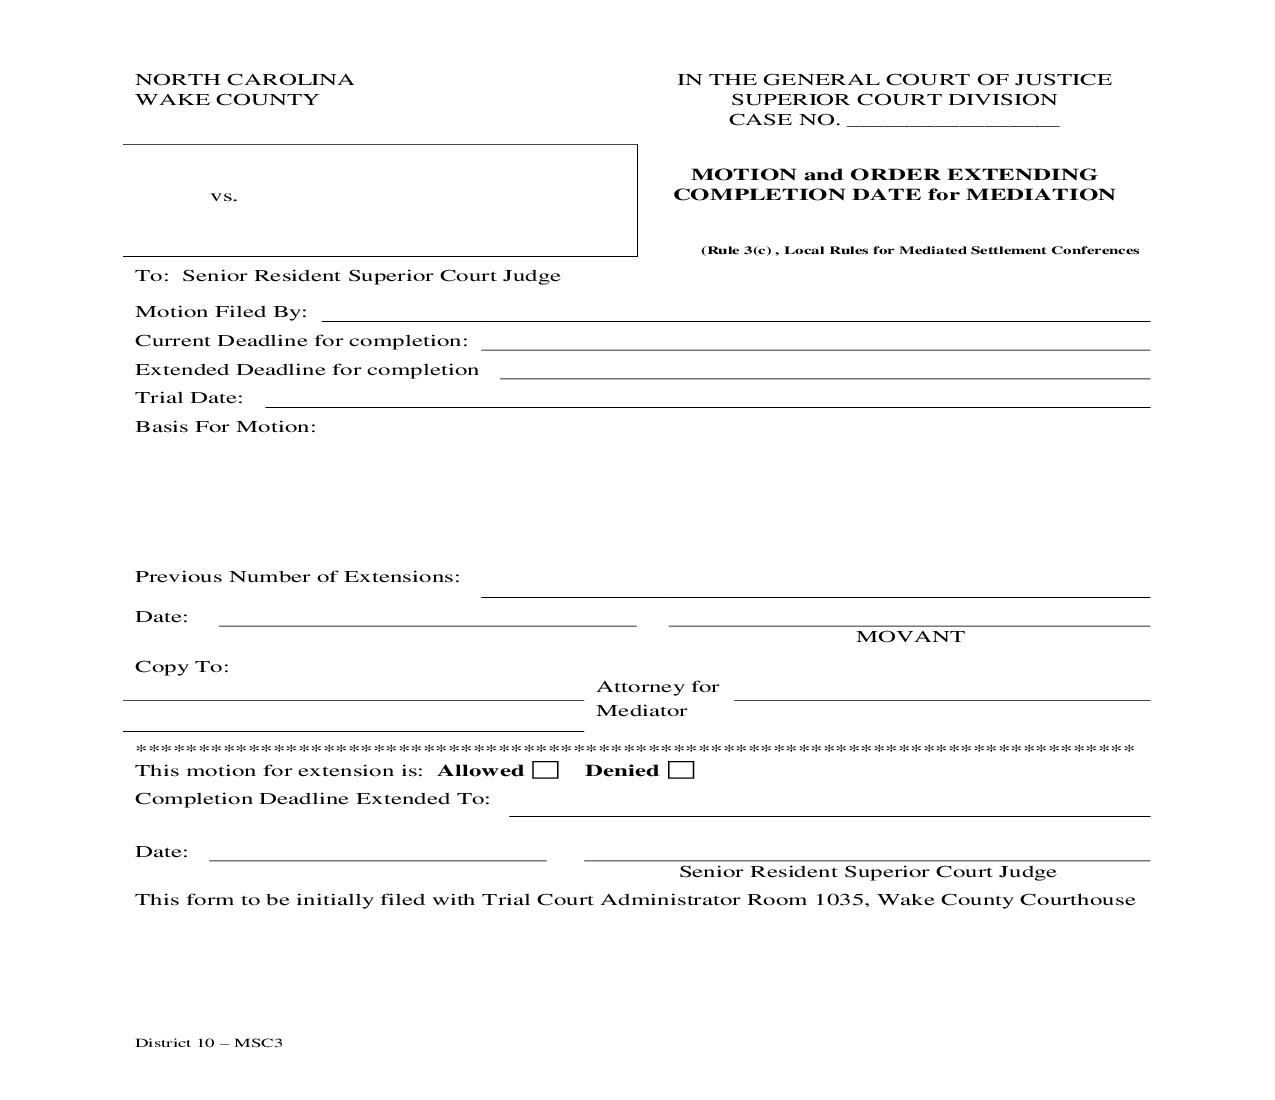 Motion And Order Extending Completion Date For Mediation | Pdf Fpdf Doc Docx | North Carolina